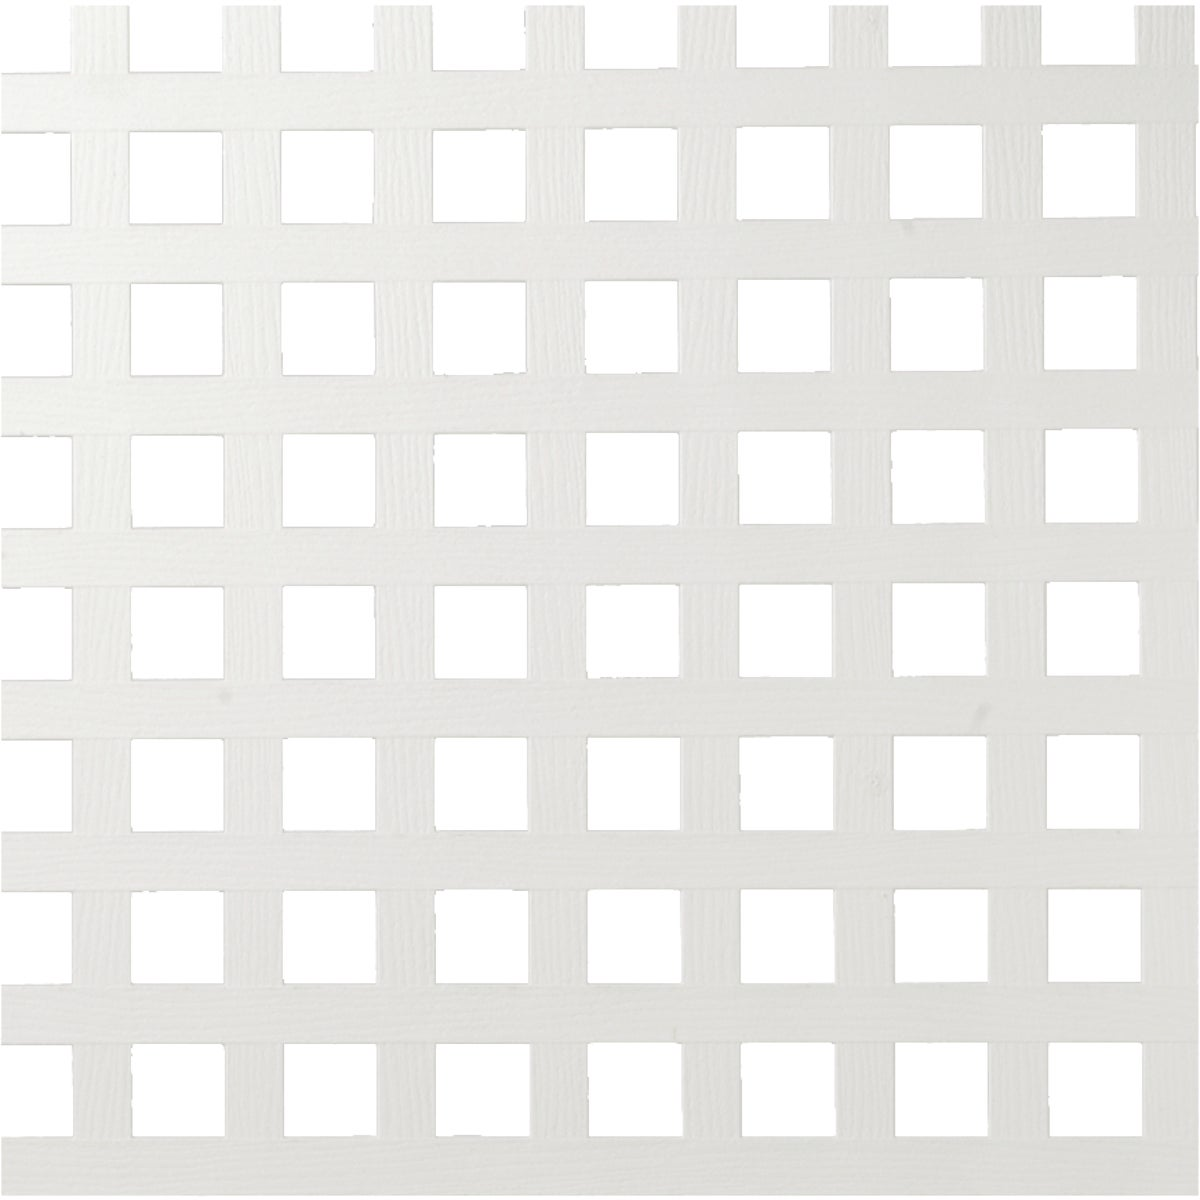 4X8 WHT SQ PRVY LATTICE - 79959 by Ufpi   Plstc Lattice